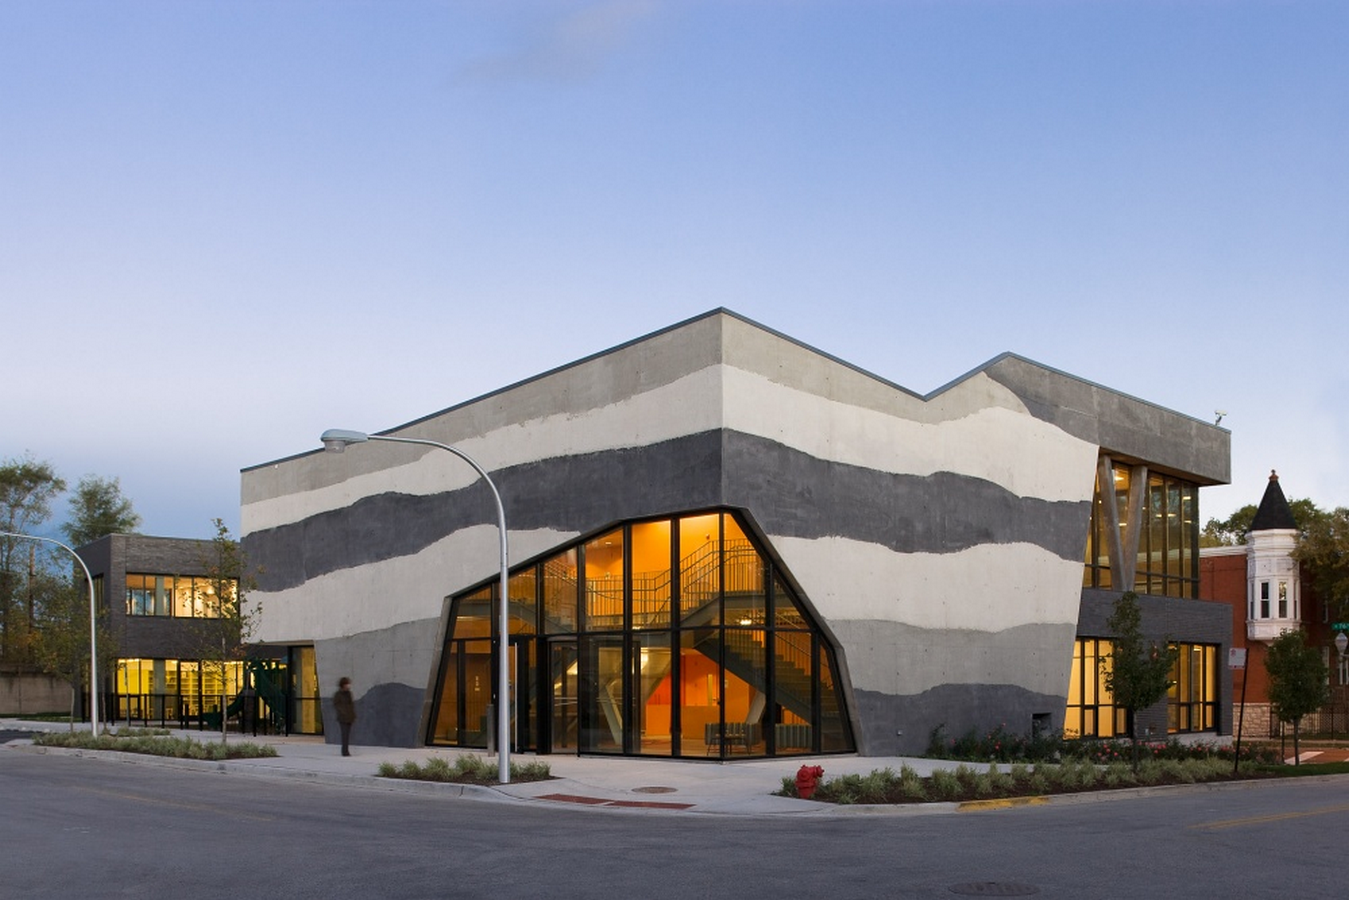 10 examples of recycled concrete - Sheet2